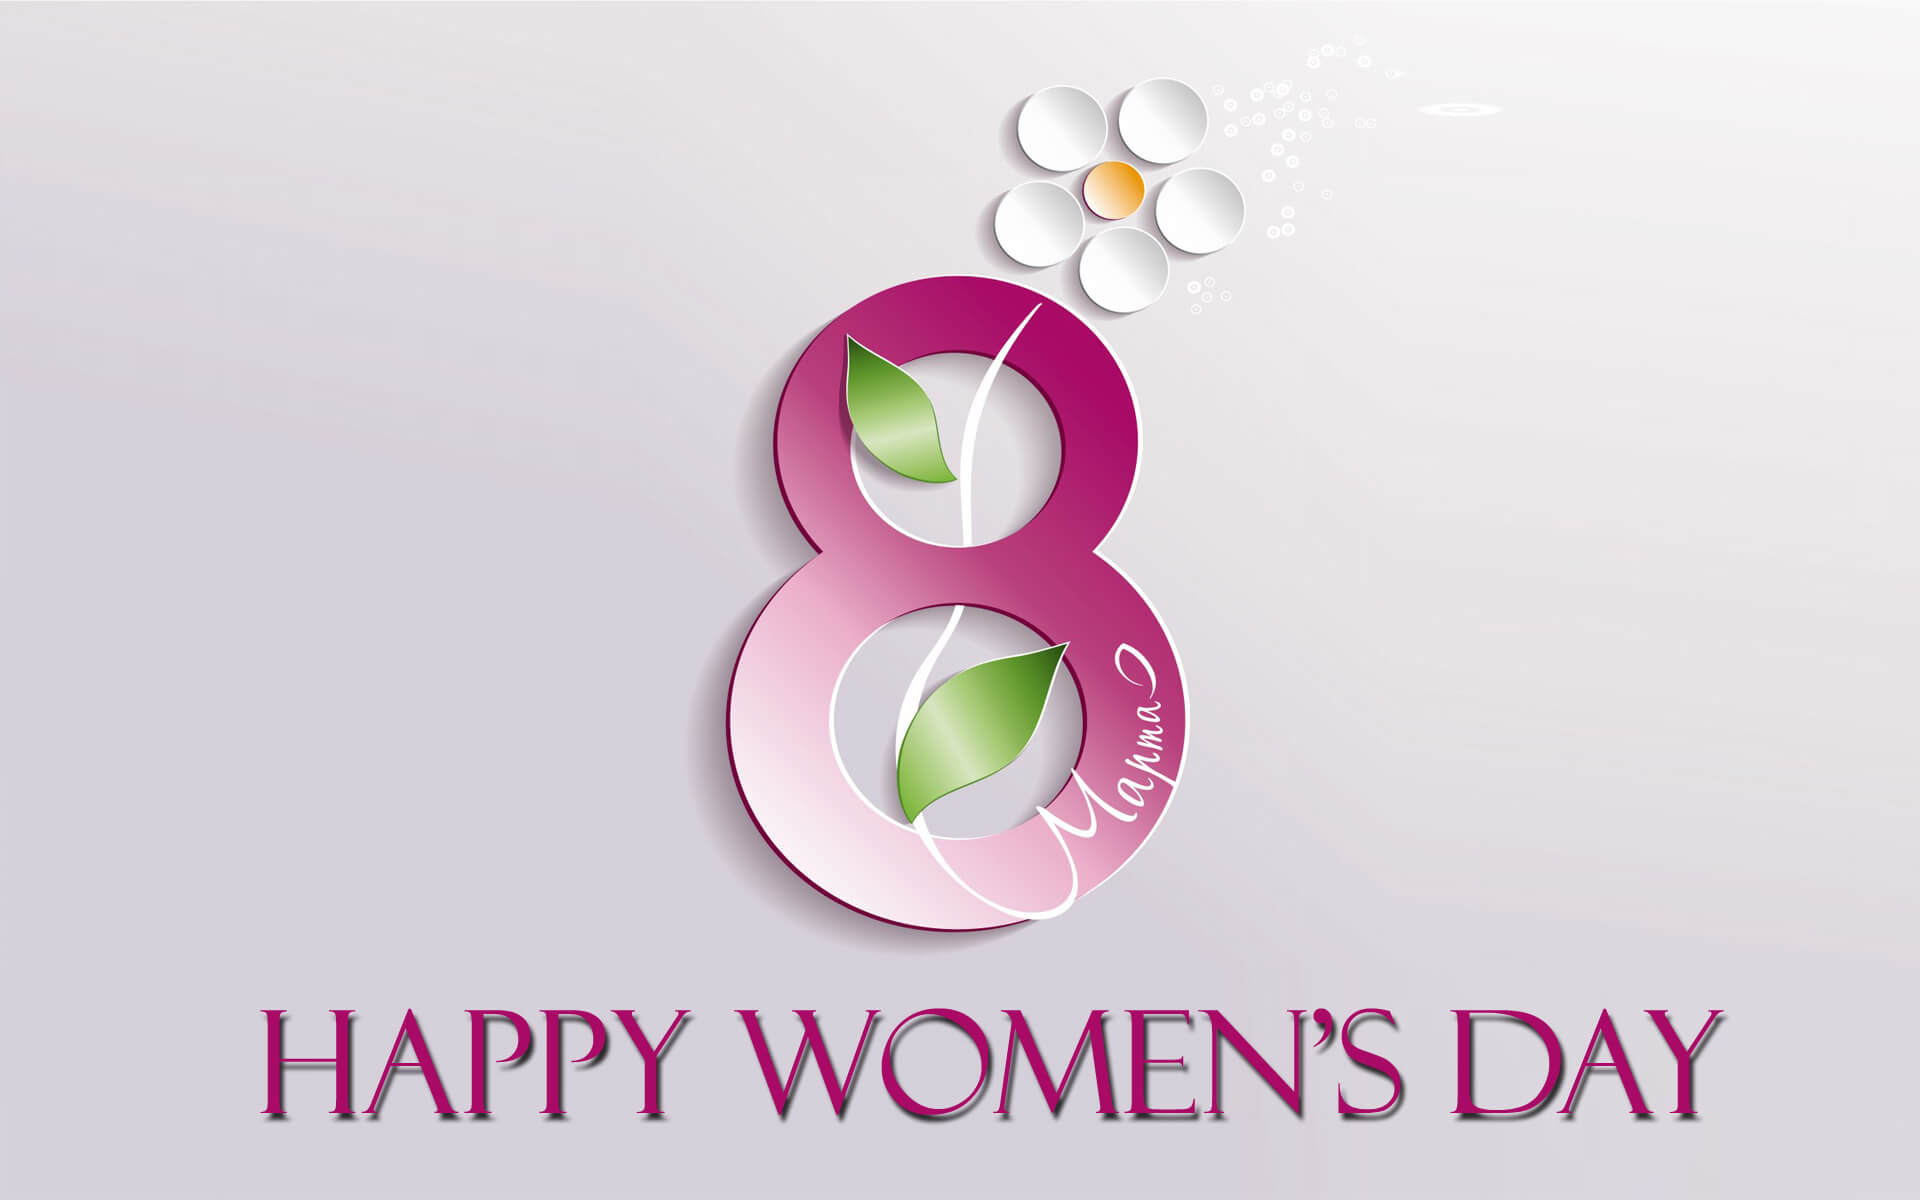 happy womens day 8 march greetings wishes image wallpaper